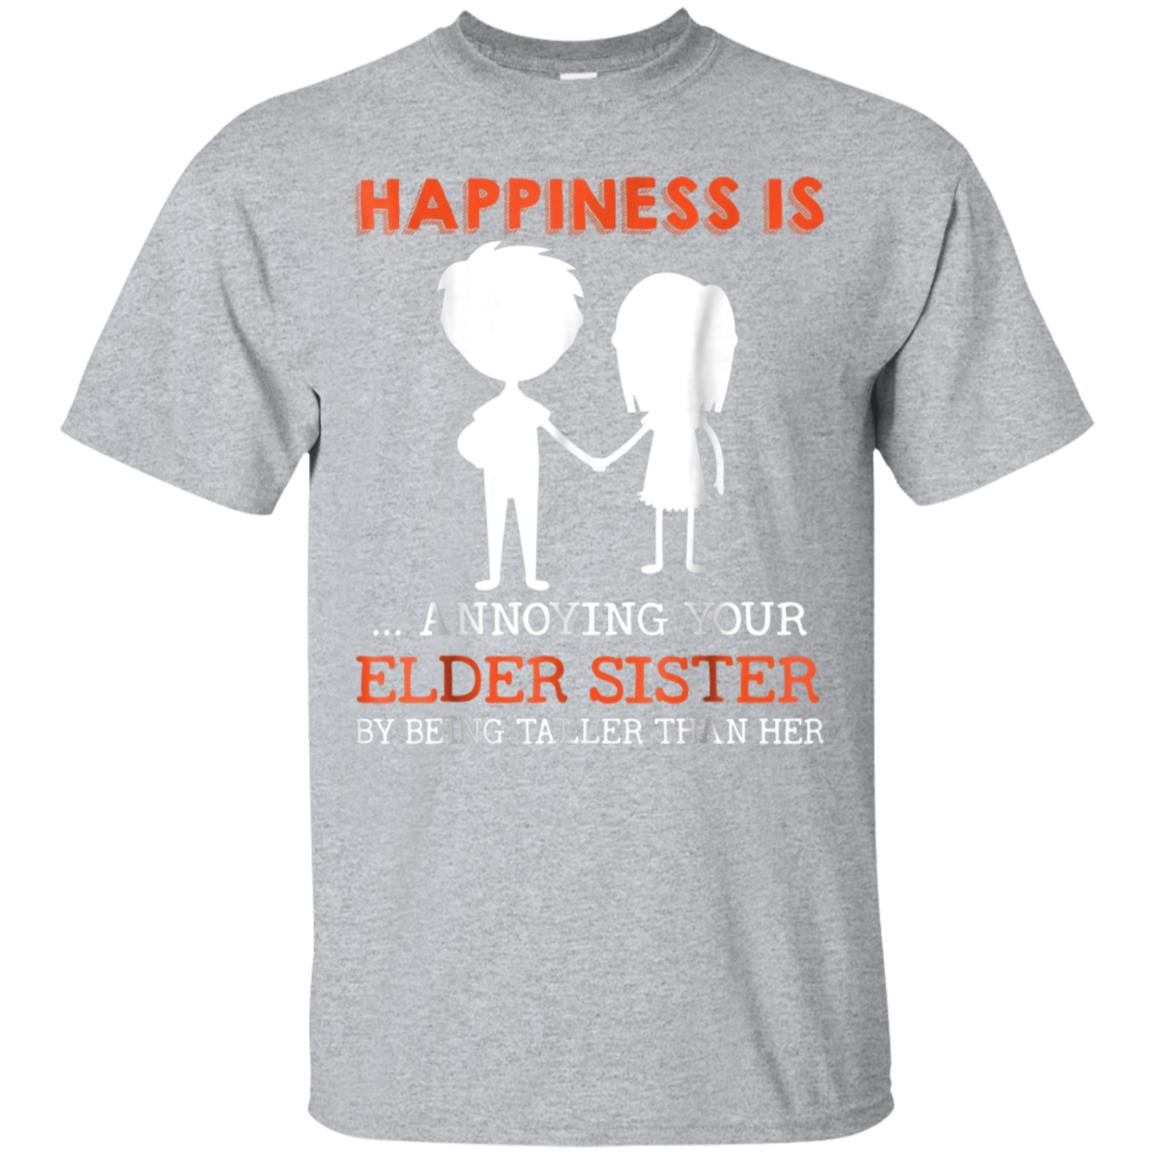 Funny Sibling Gift for Little Brother Shirt Lil Sister Shirt 99promocode